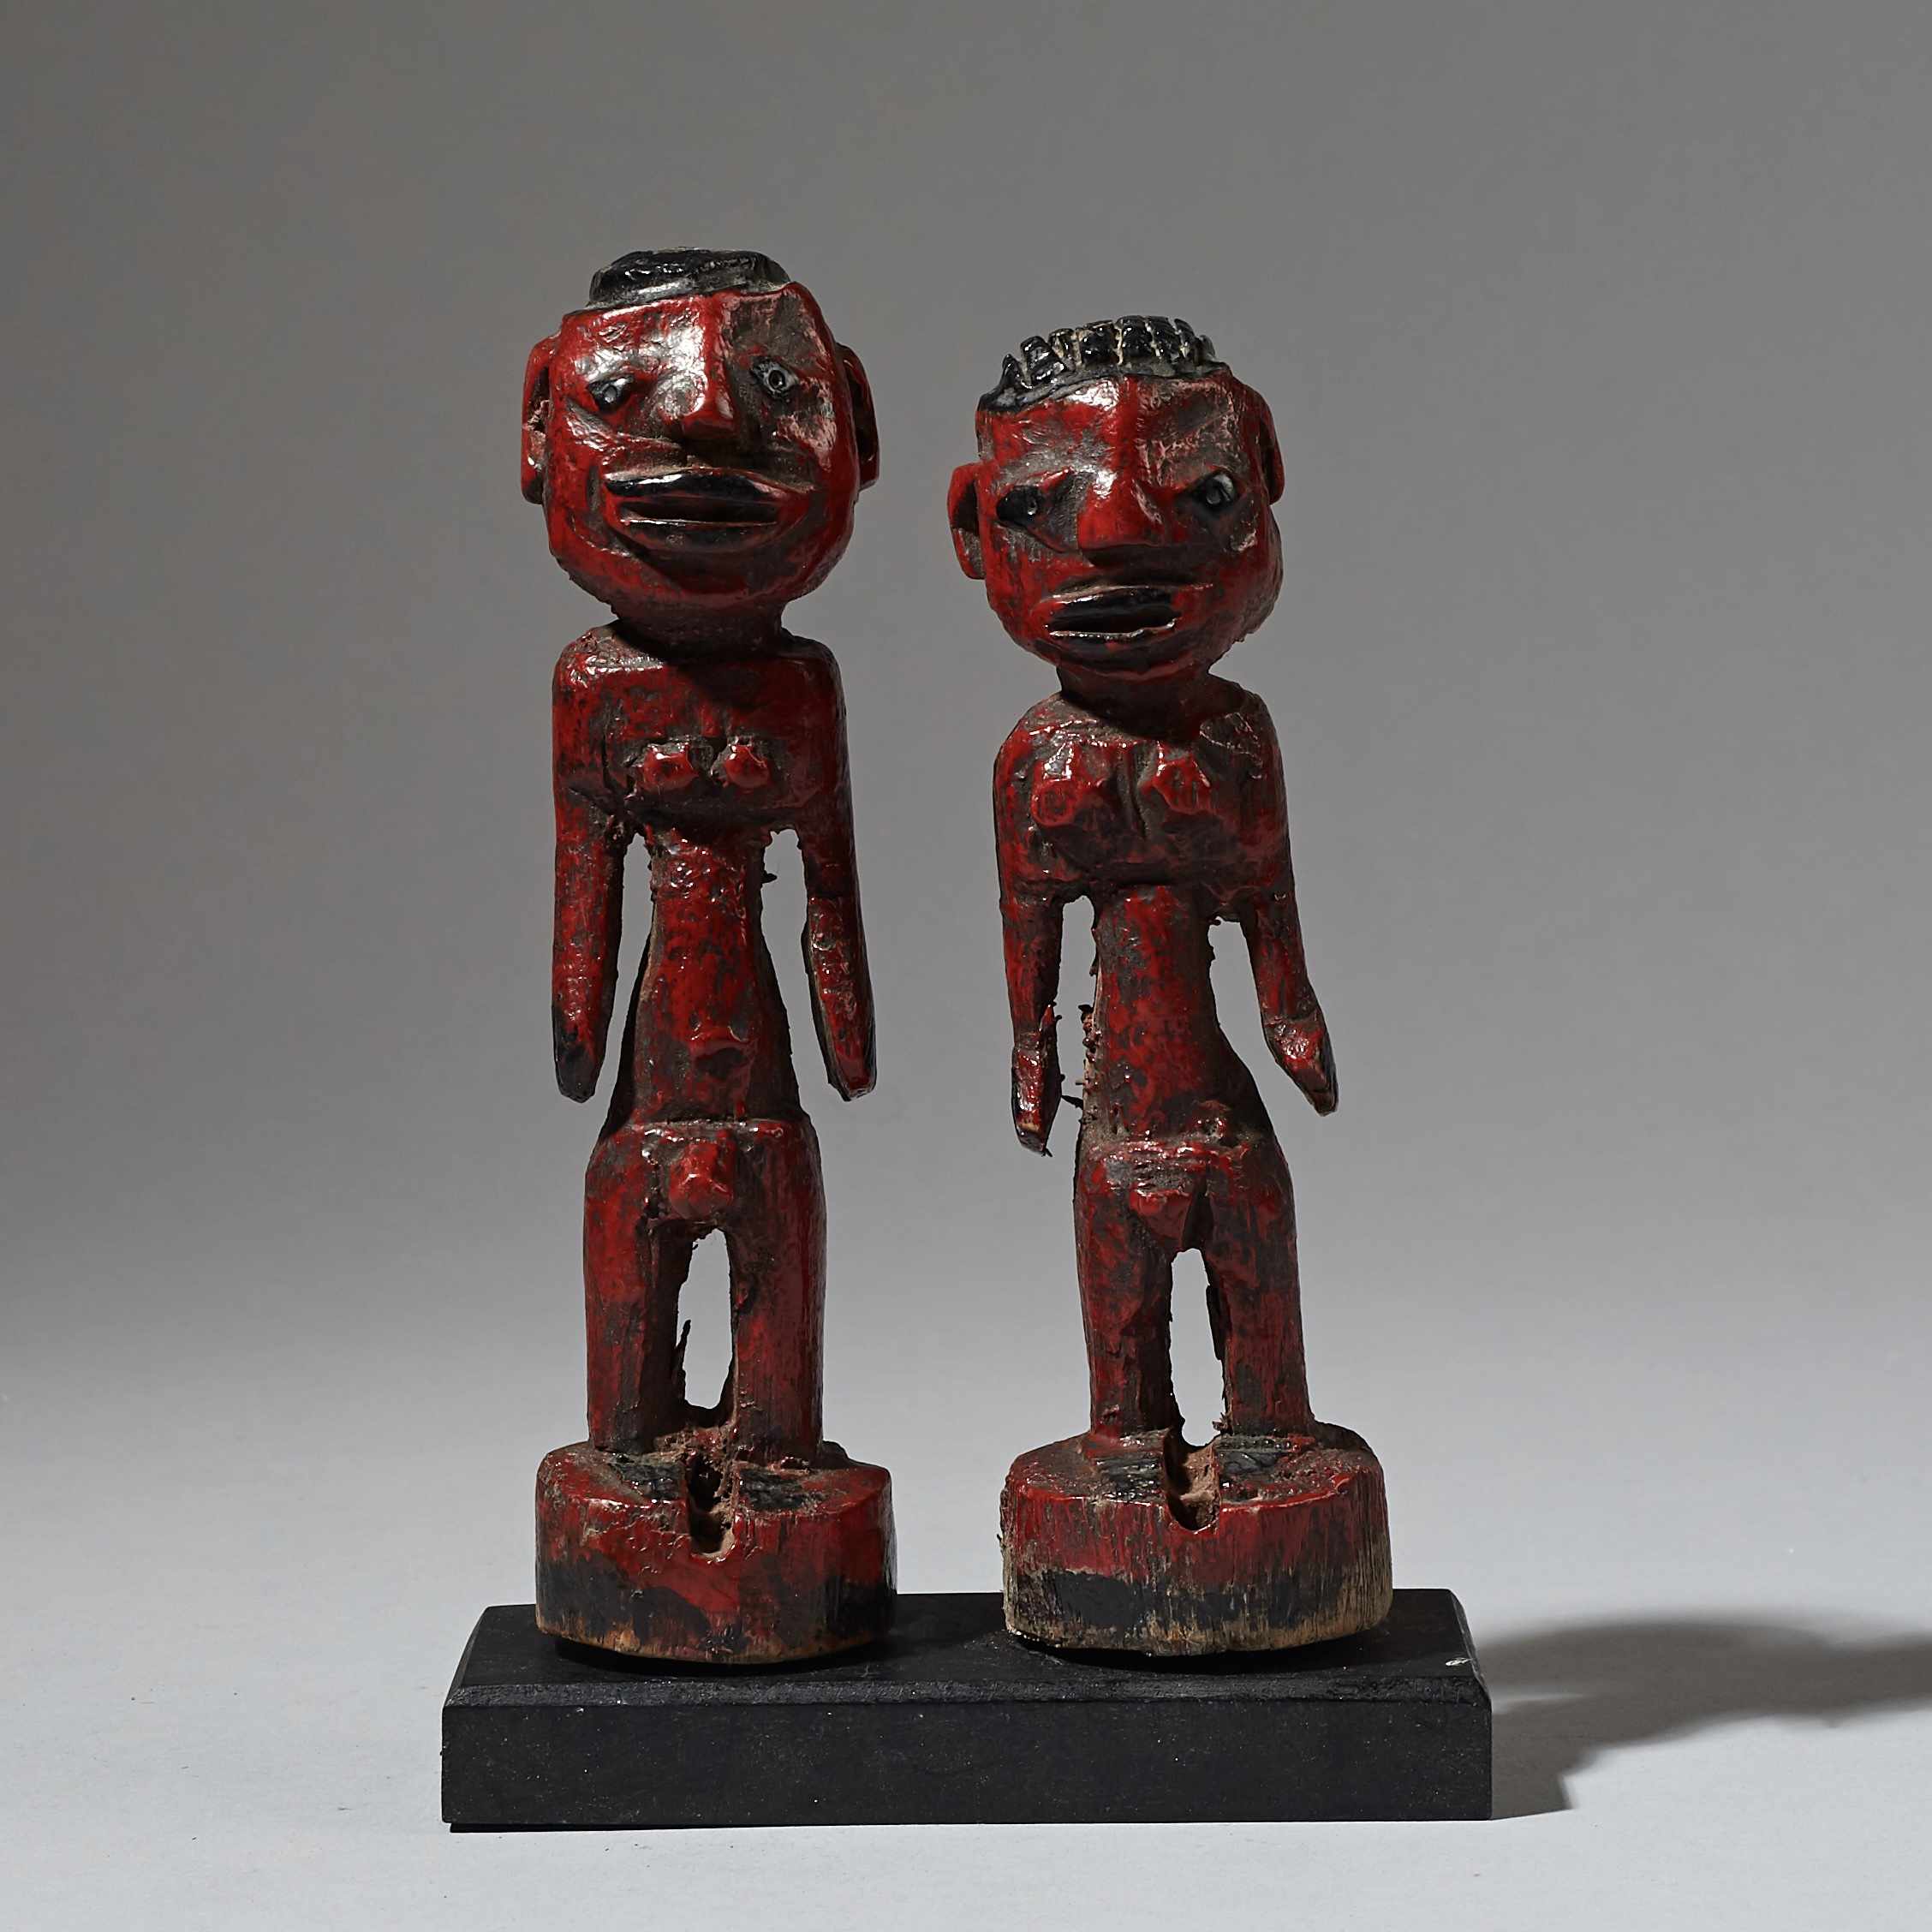 AN ARTISTIC, PAINTED PAIR OF VENAVI TWIN DOLLS FROM EWE TRIBE OF TOGO ( No 3058 )